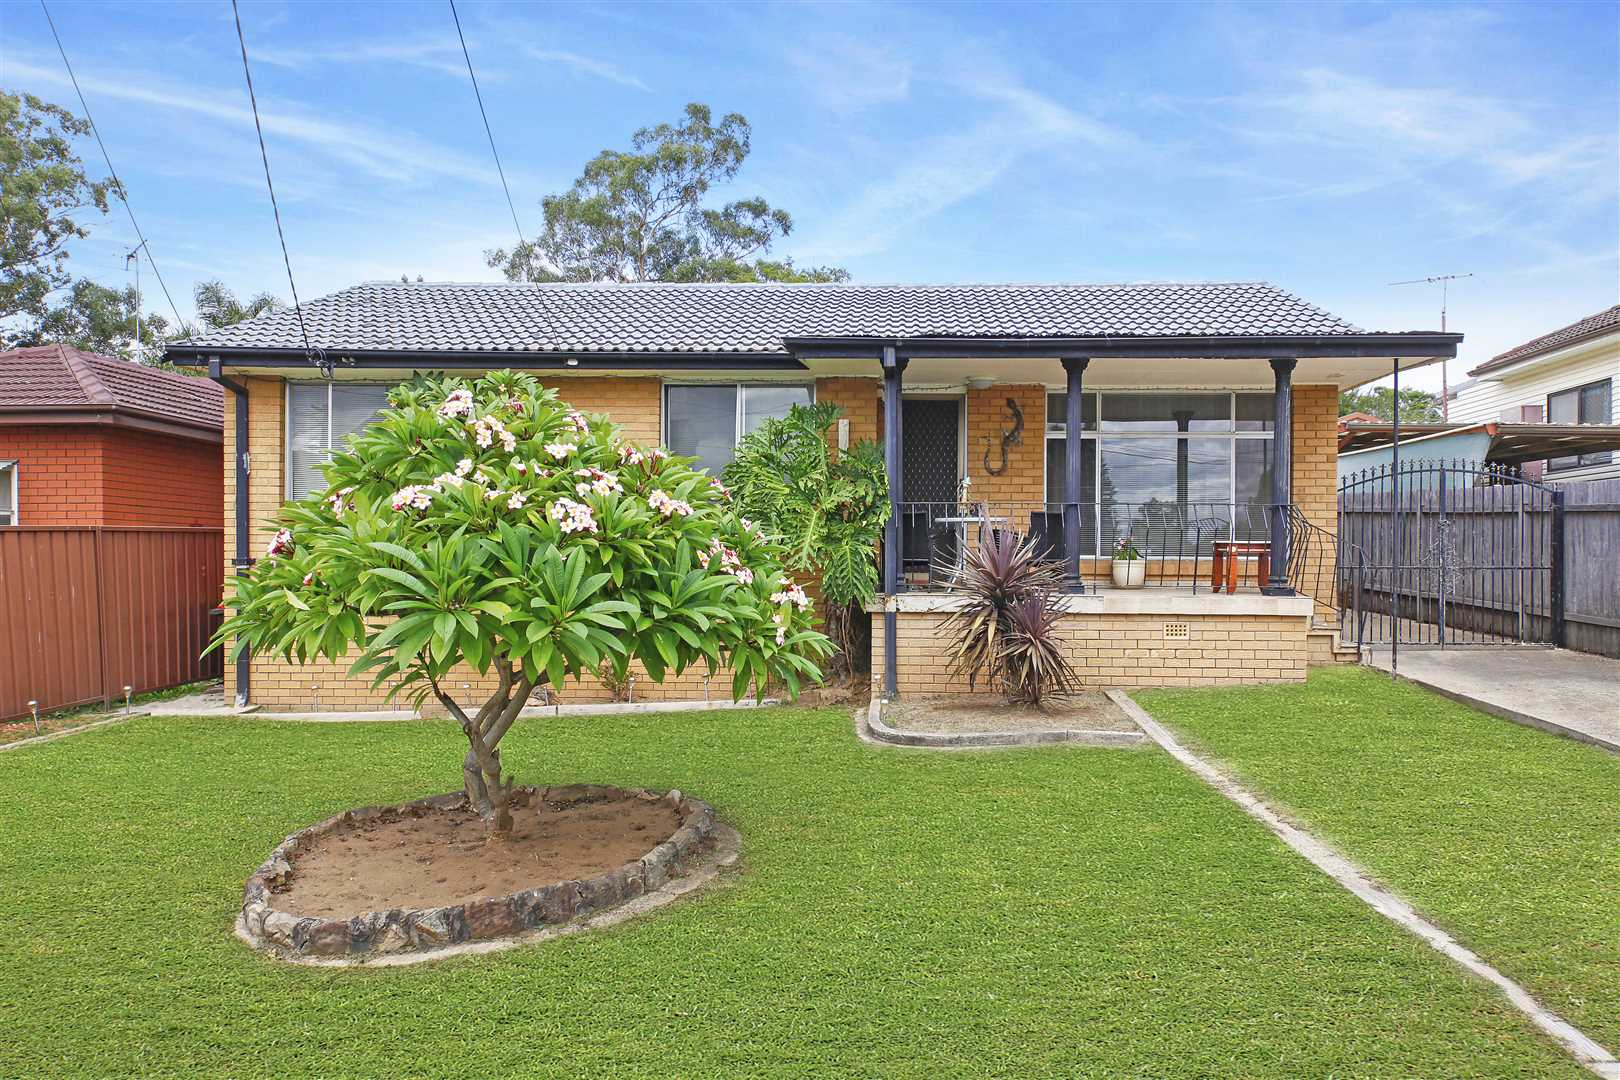 Large 651sqm Block - Must Be Sold!